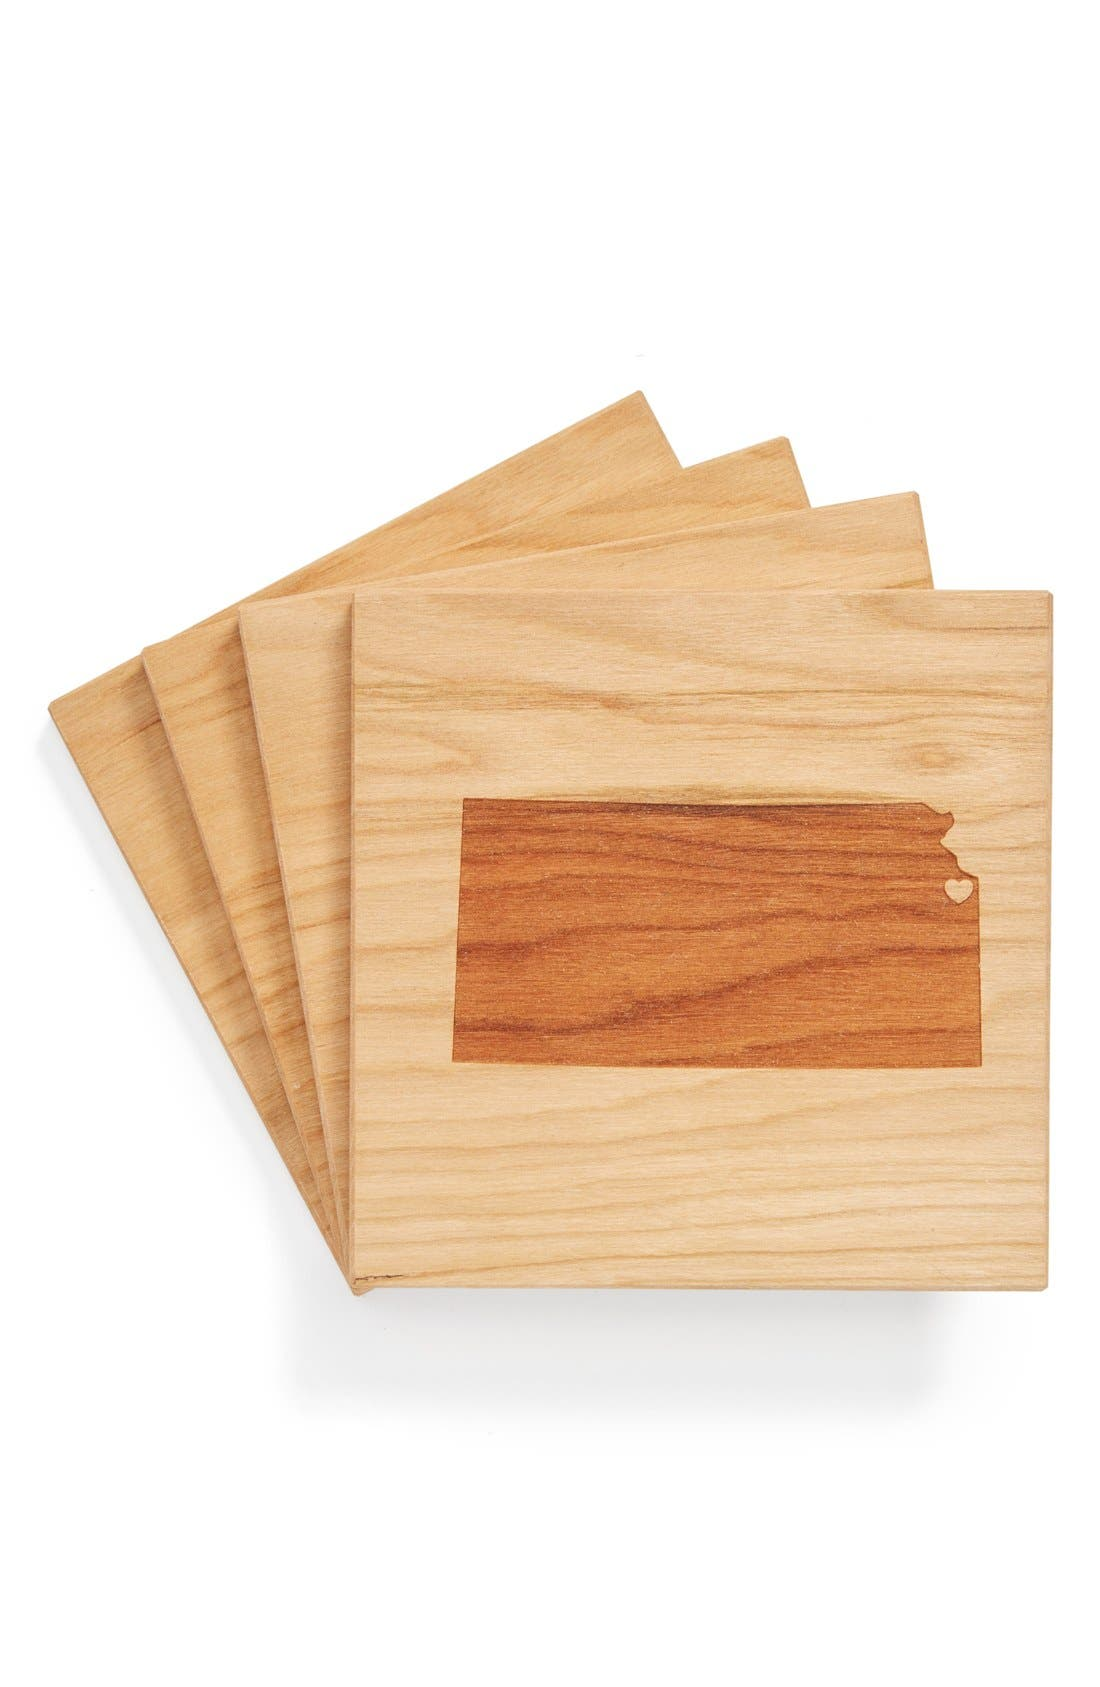 'State Silhouette' Coasters,                             Main thumbnail 27, color,